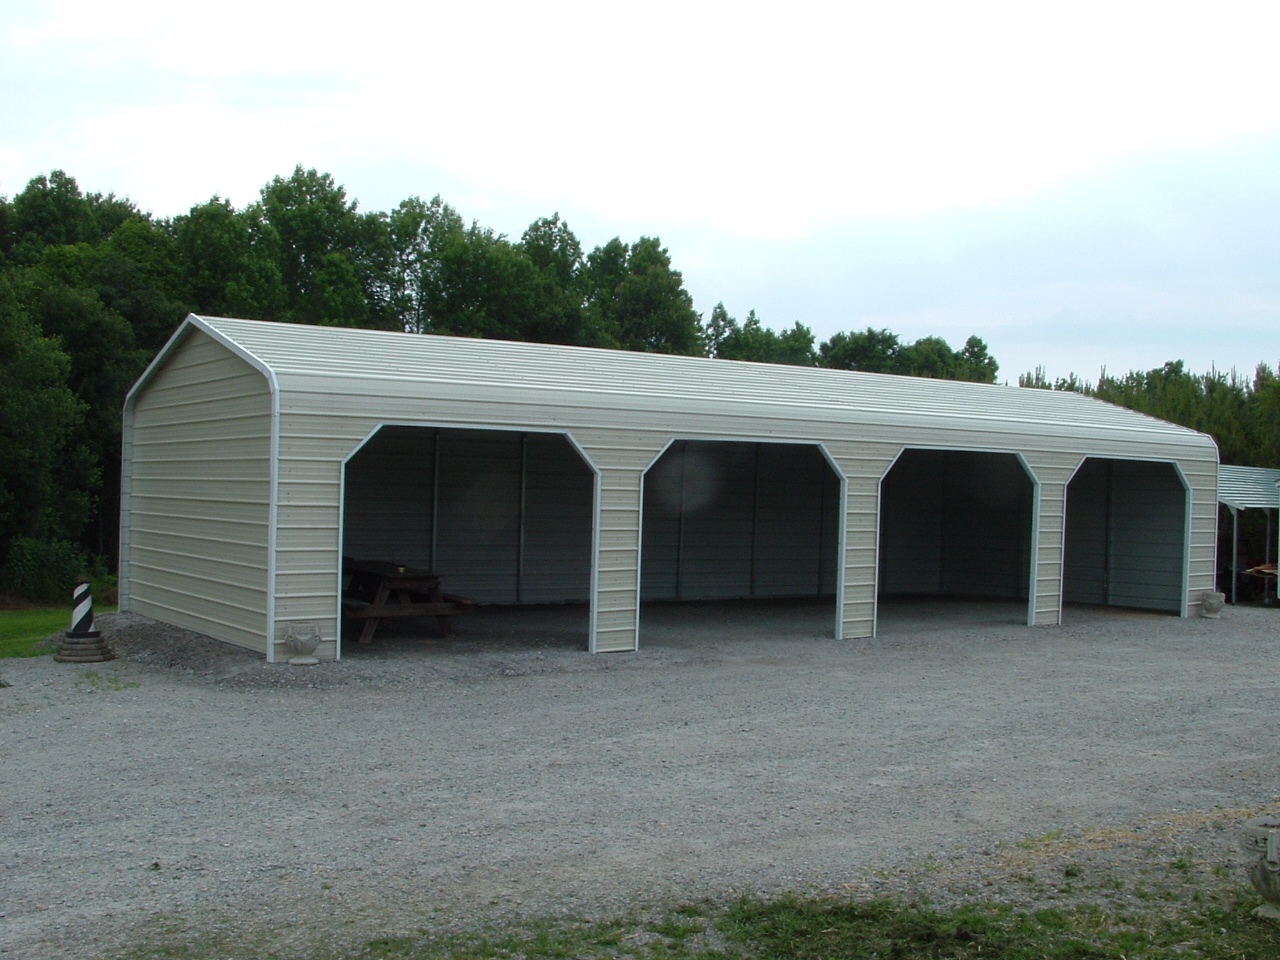 Carport Design Software Free Download